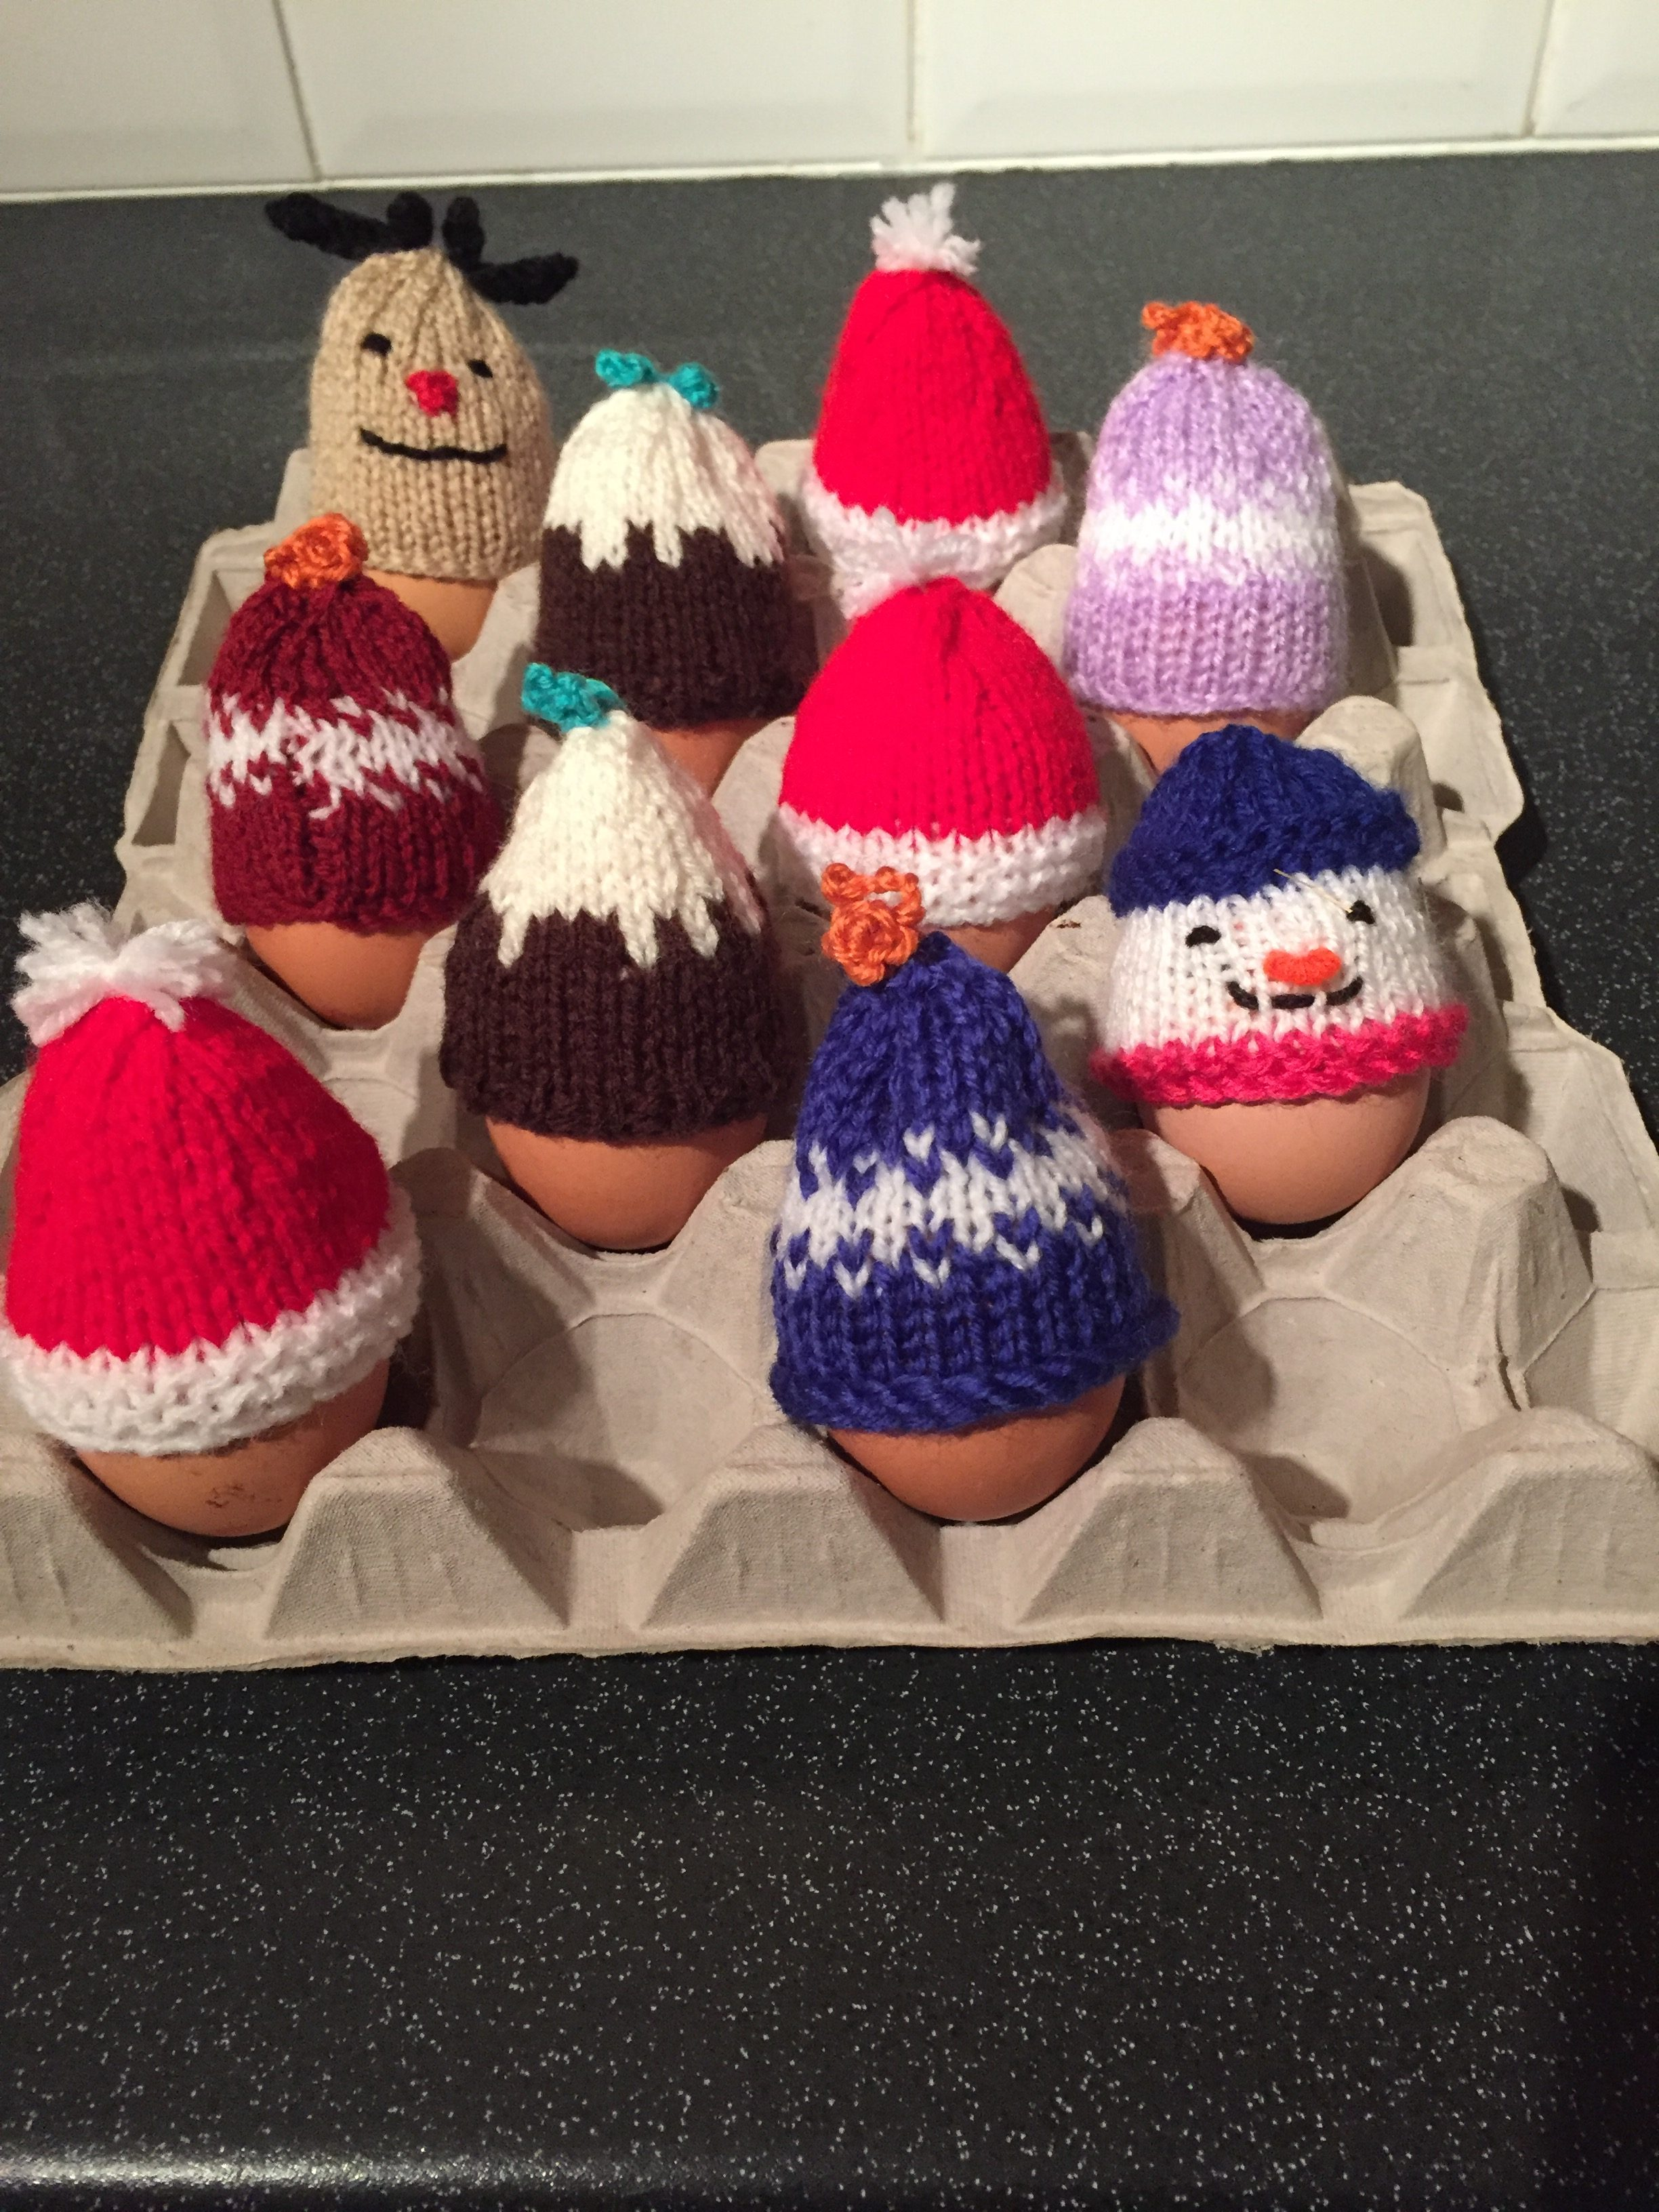 Novelty Hand Knitted Egg Hats - Jolly Good Eggs a9c897f96f2